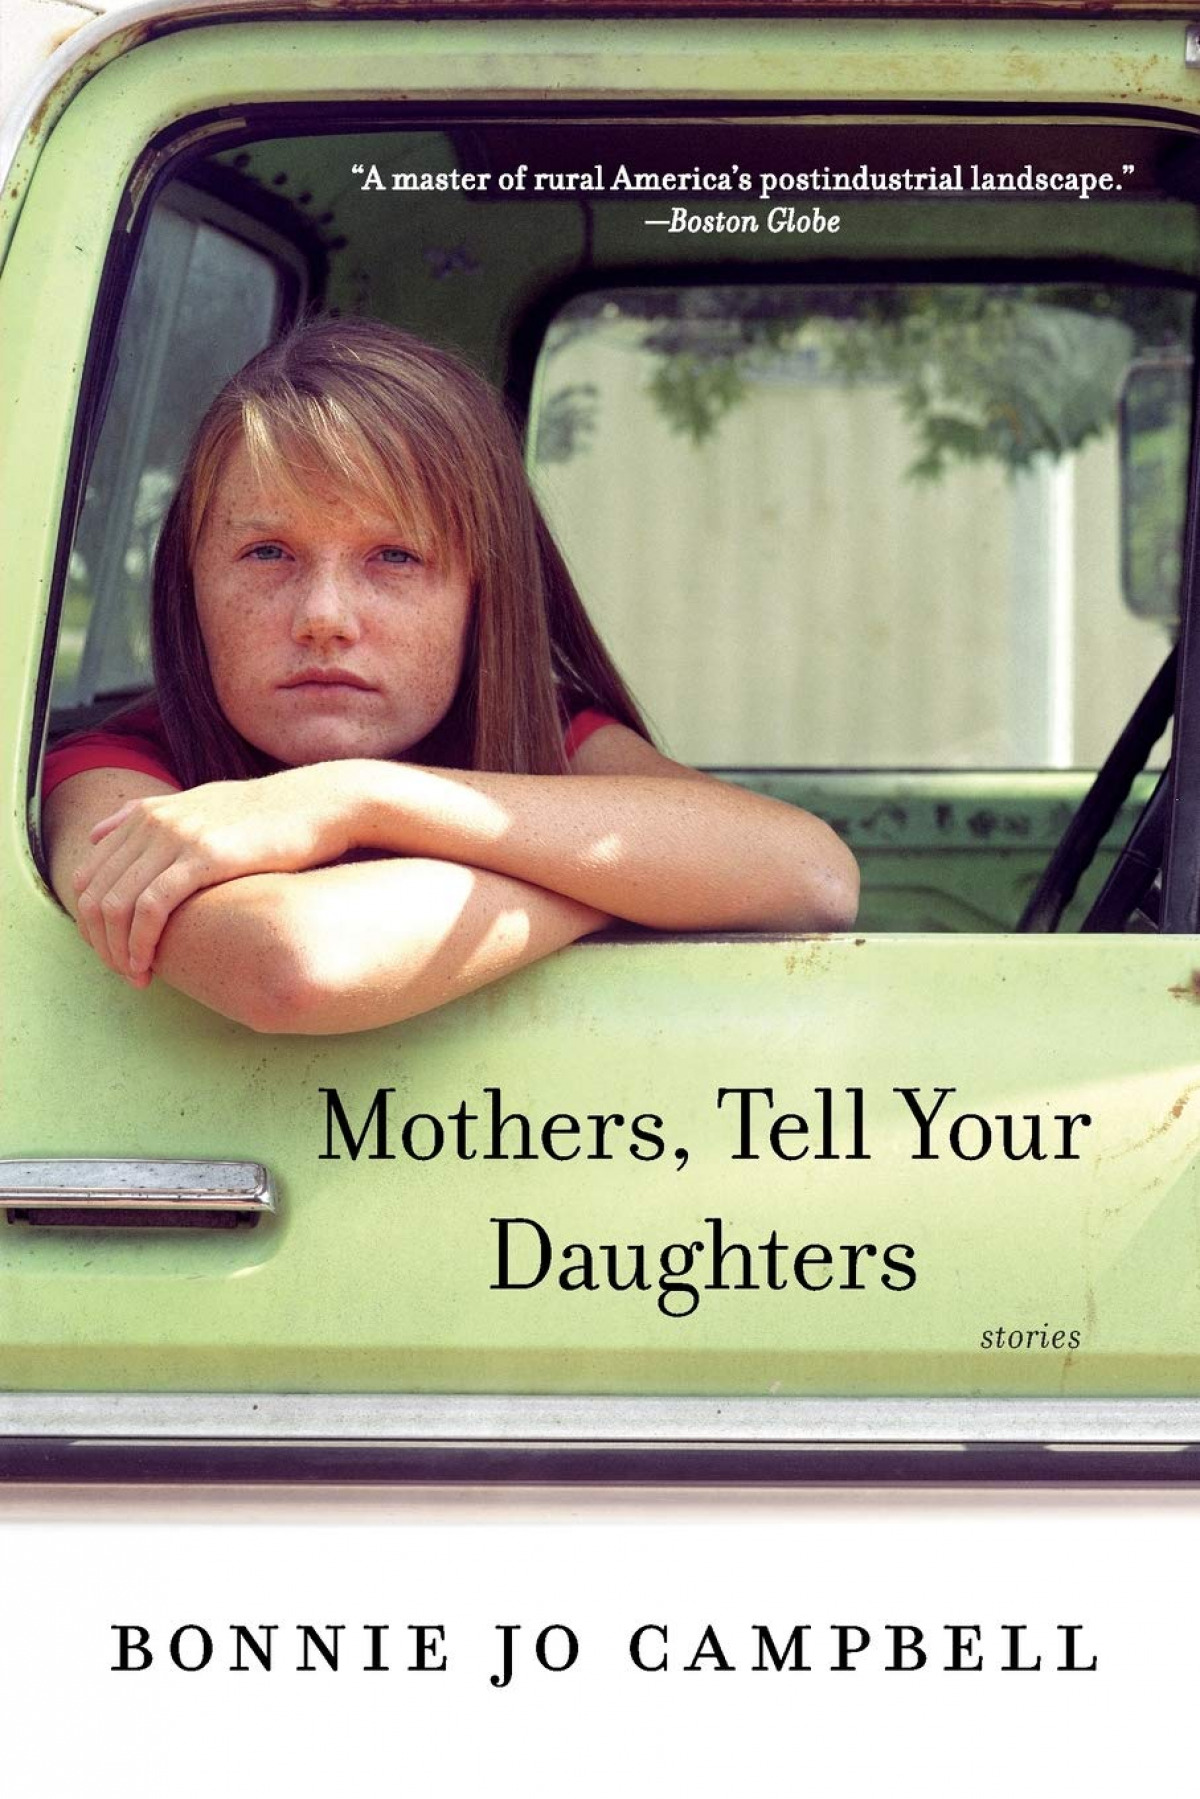 MOTHERS,TELL YOUR DAUGHTERS STORIES